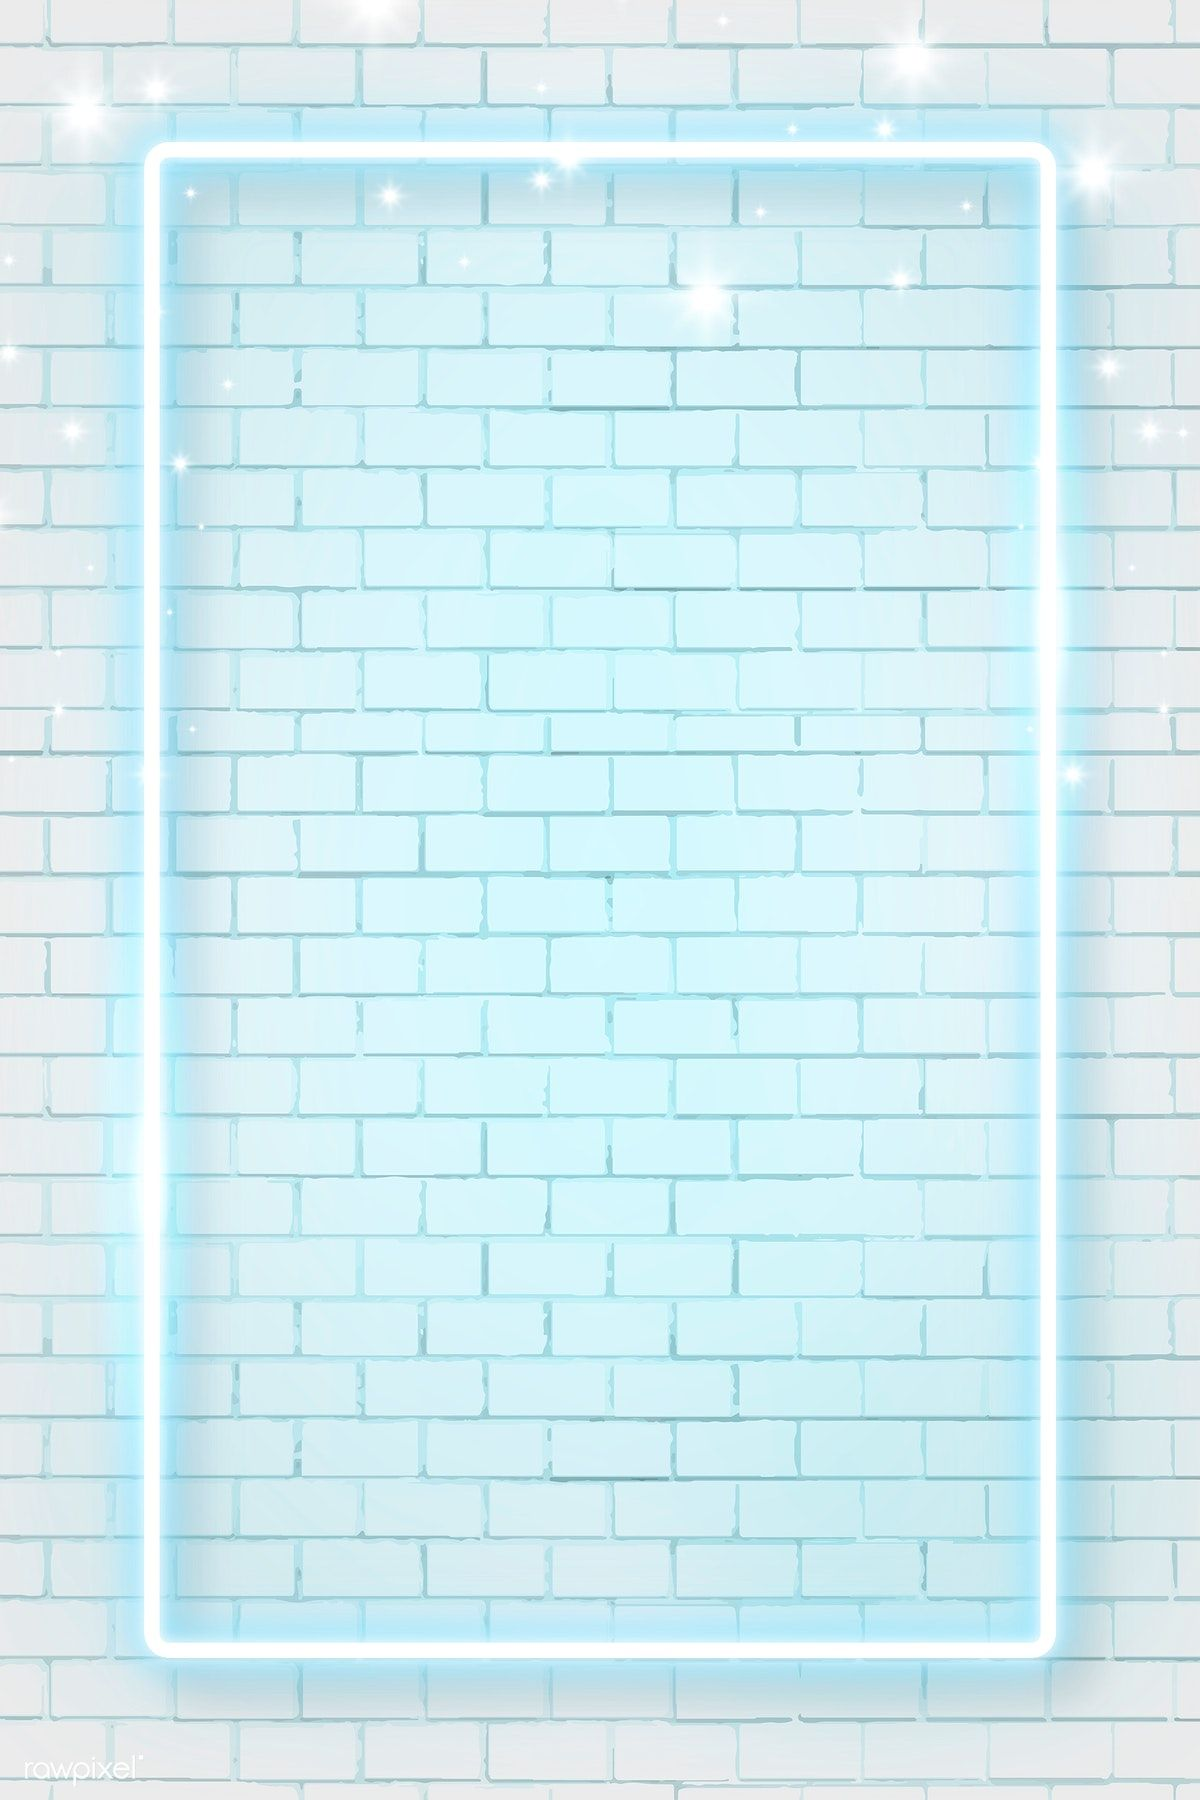 Download premium vector of Blue neon frame on brick wall background vector